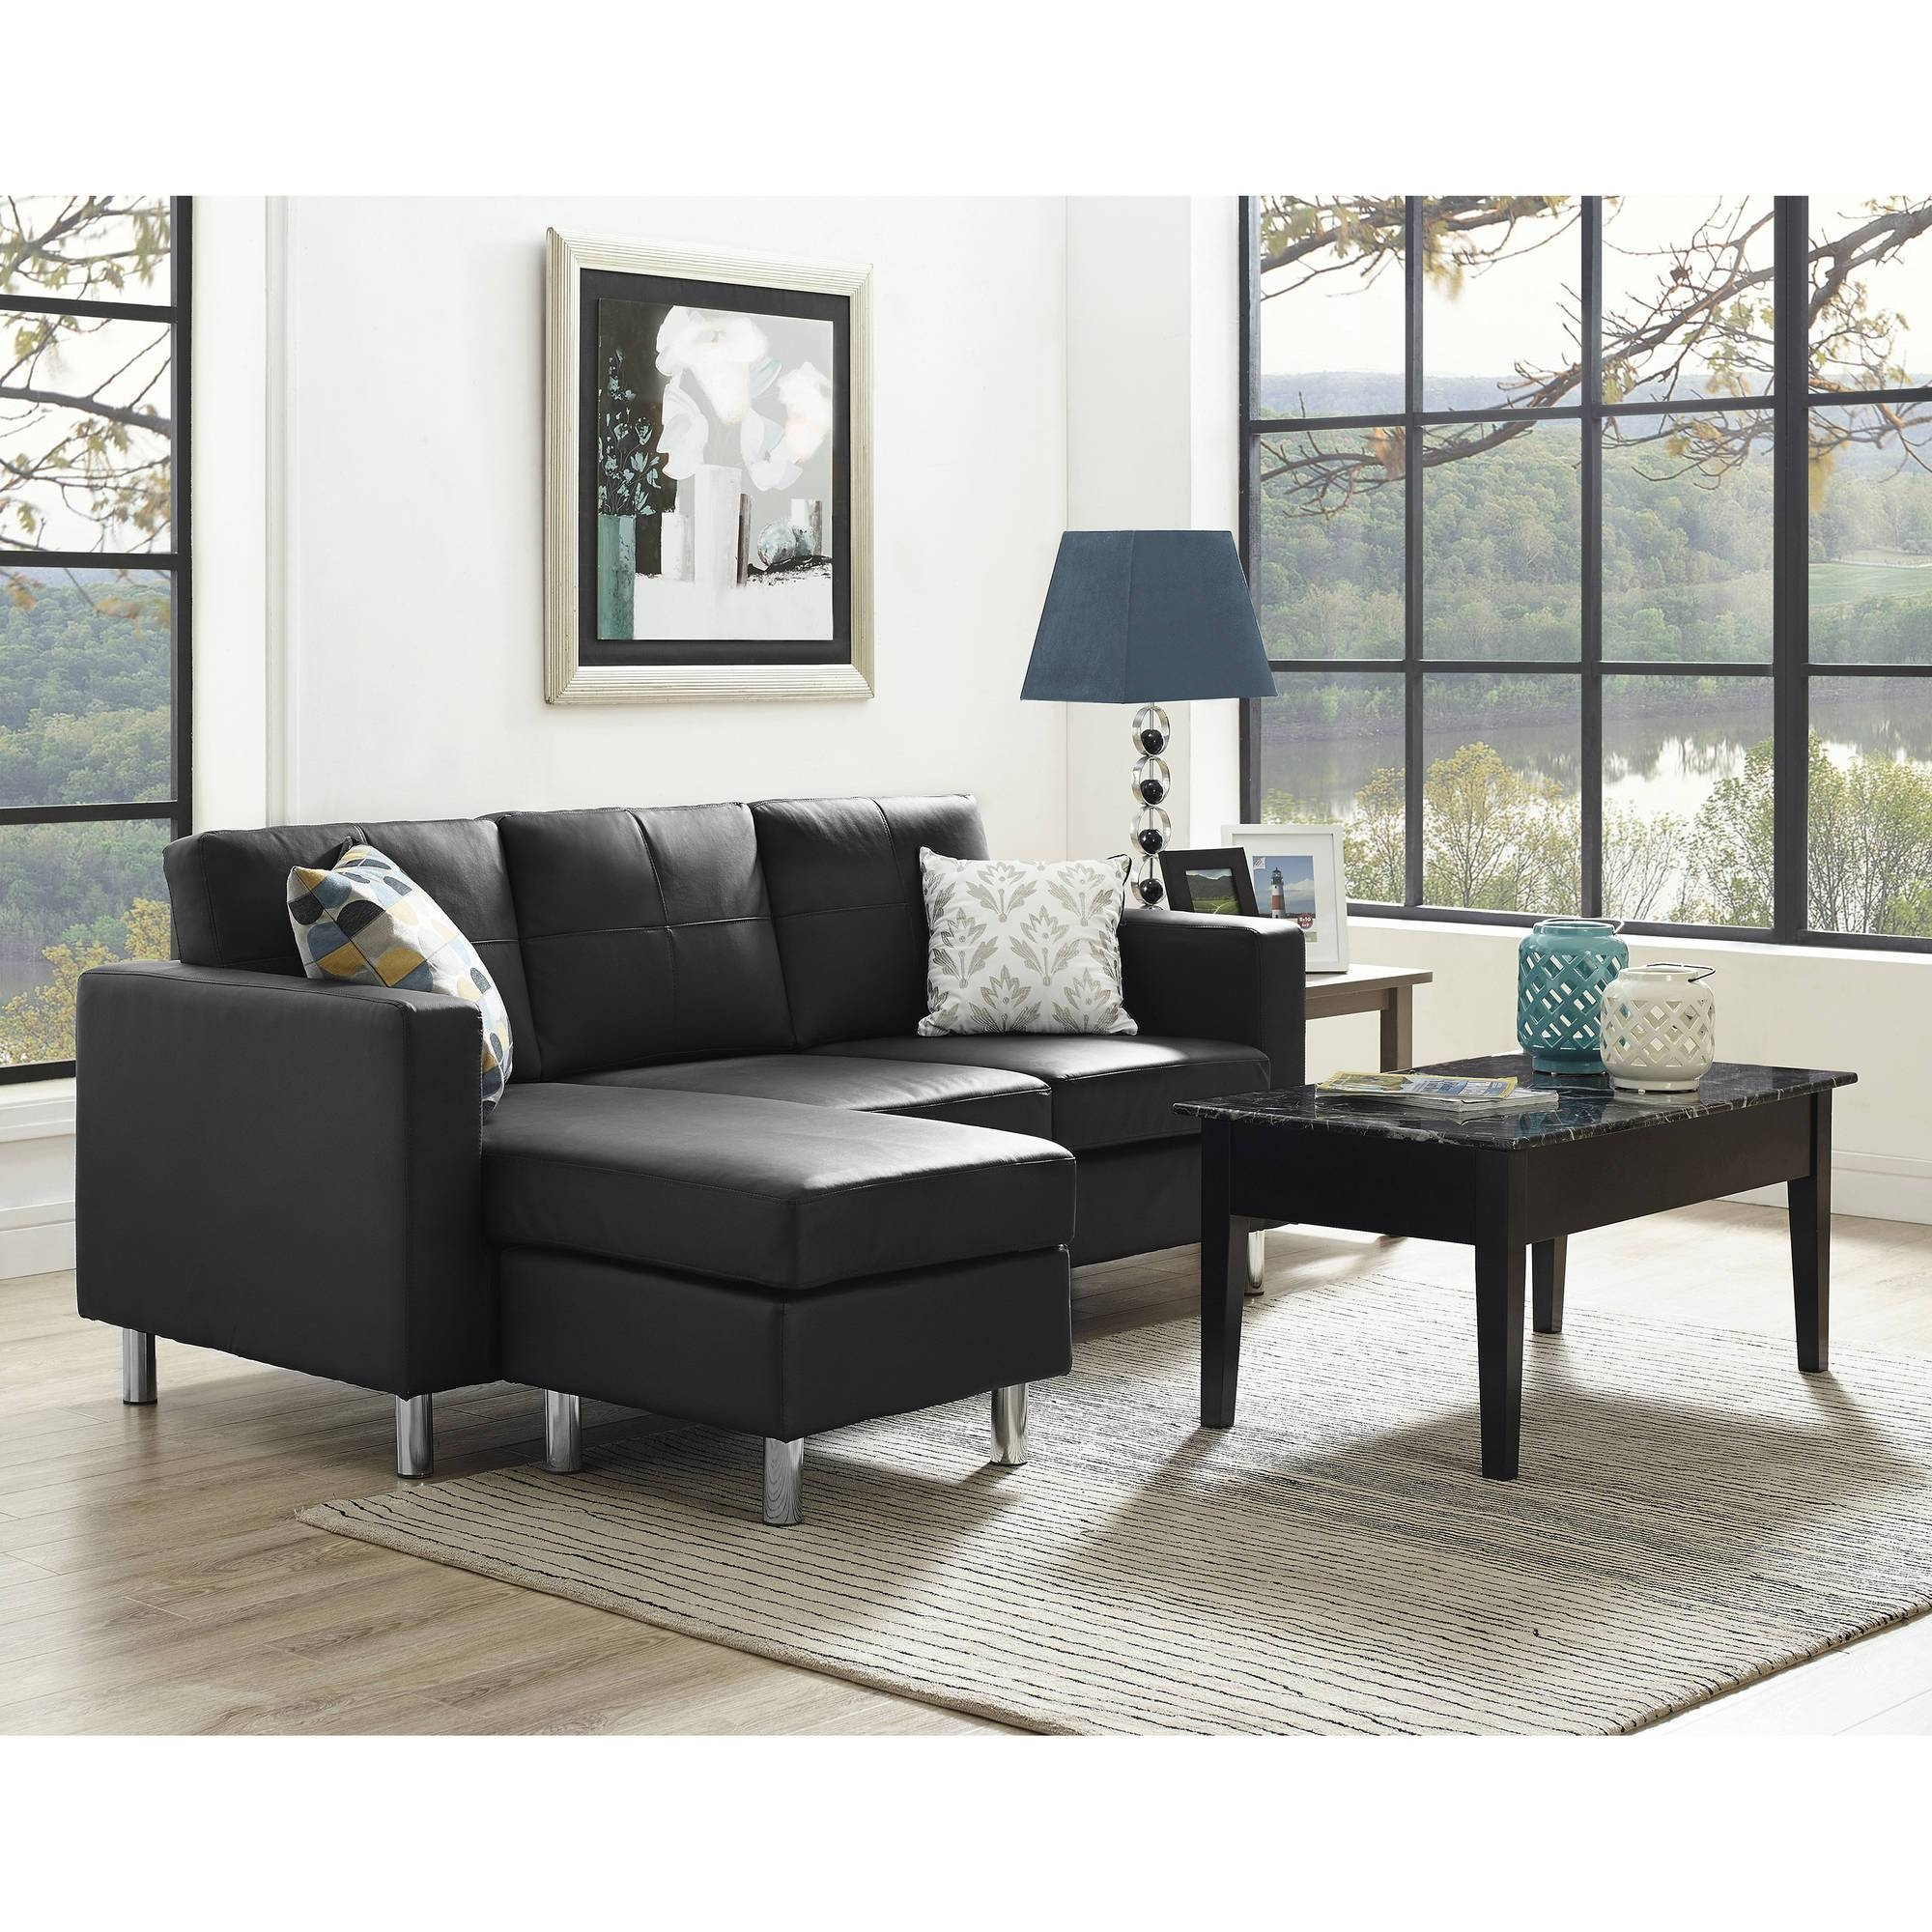 Furniture: Wonderful Walmart Couch Covers Design For Alluring with regard to Coffee Table For Sectional Sofa With Chaise (Image 16 of 30)